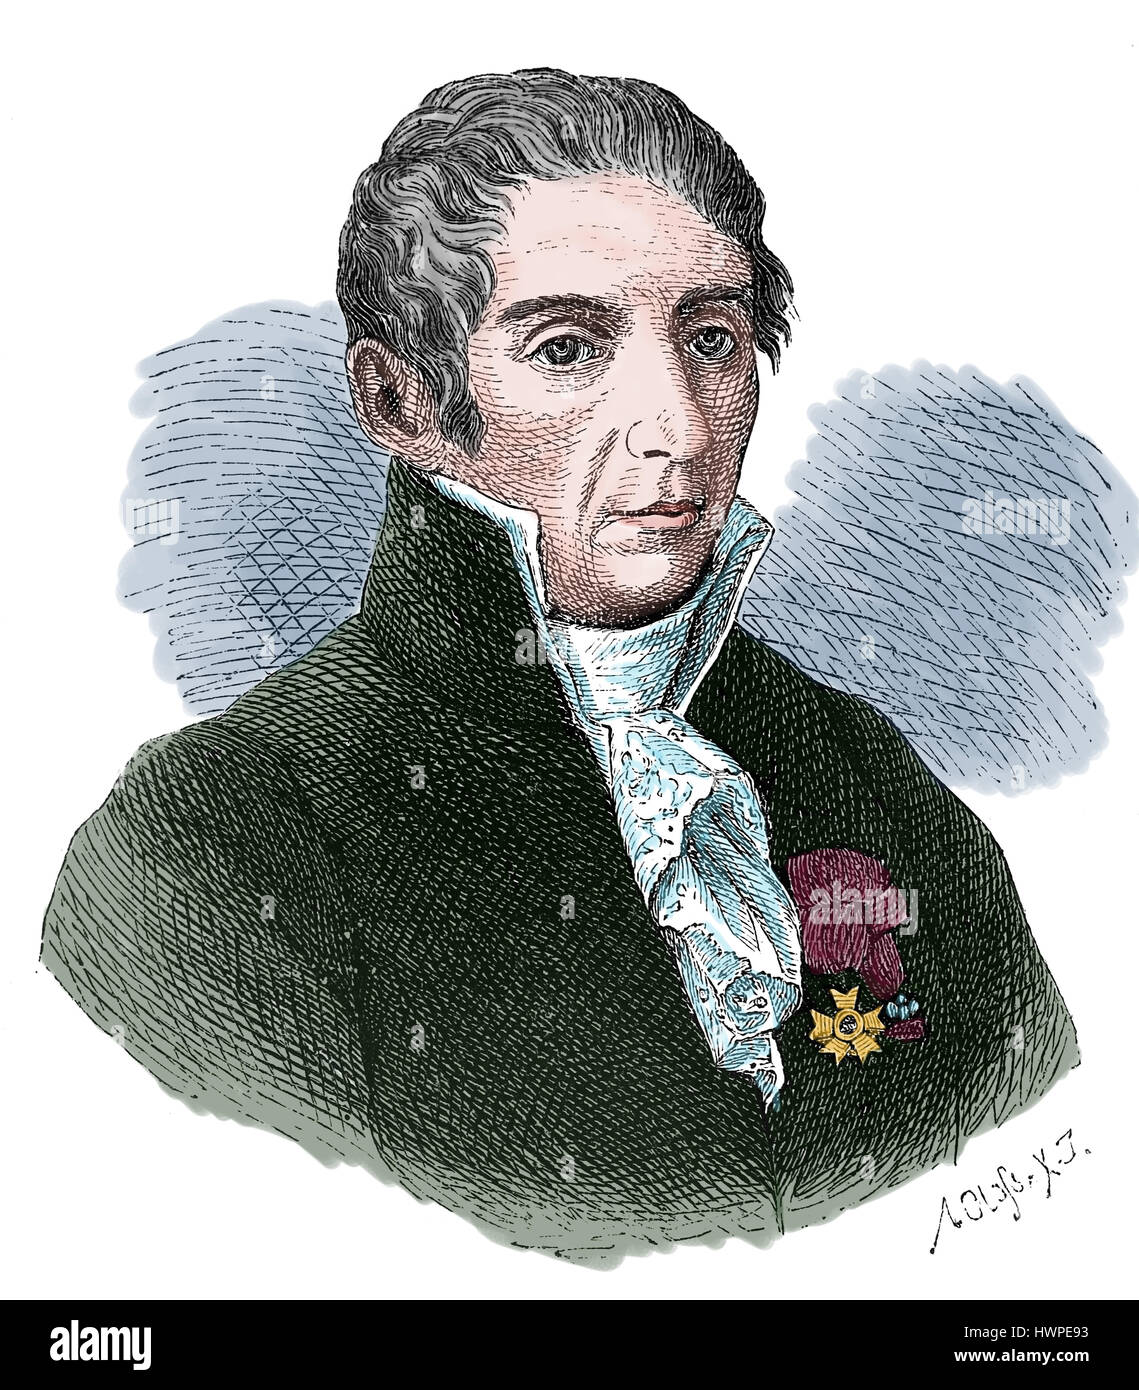 Alessandro Volta (1745-1827). Italian physicist, chemist and pionner of electricity. Engraving, 1883. - Stock Image